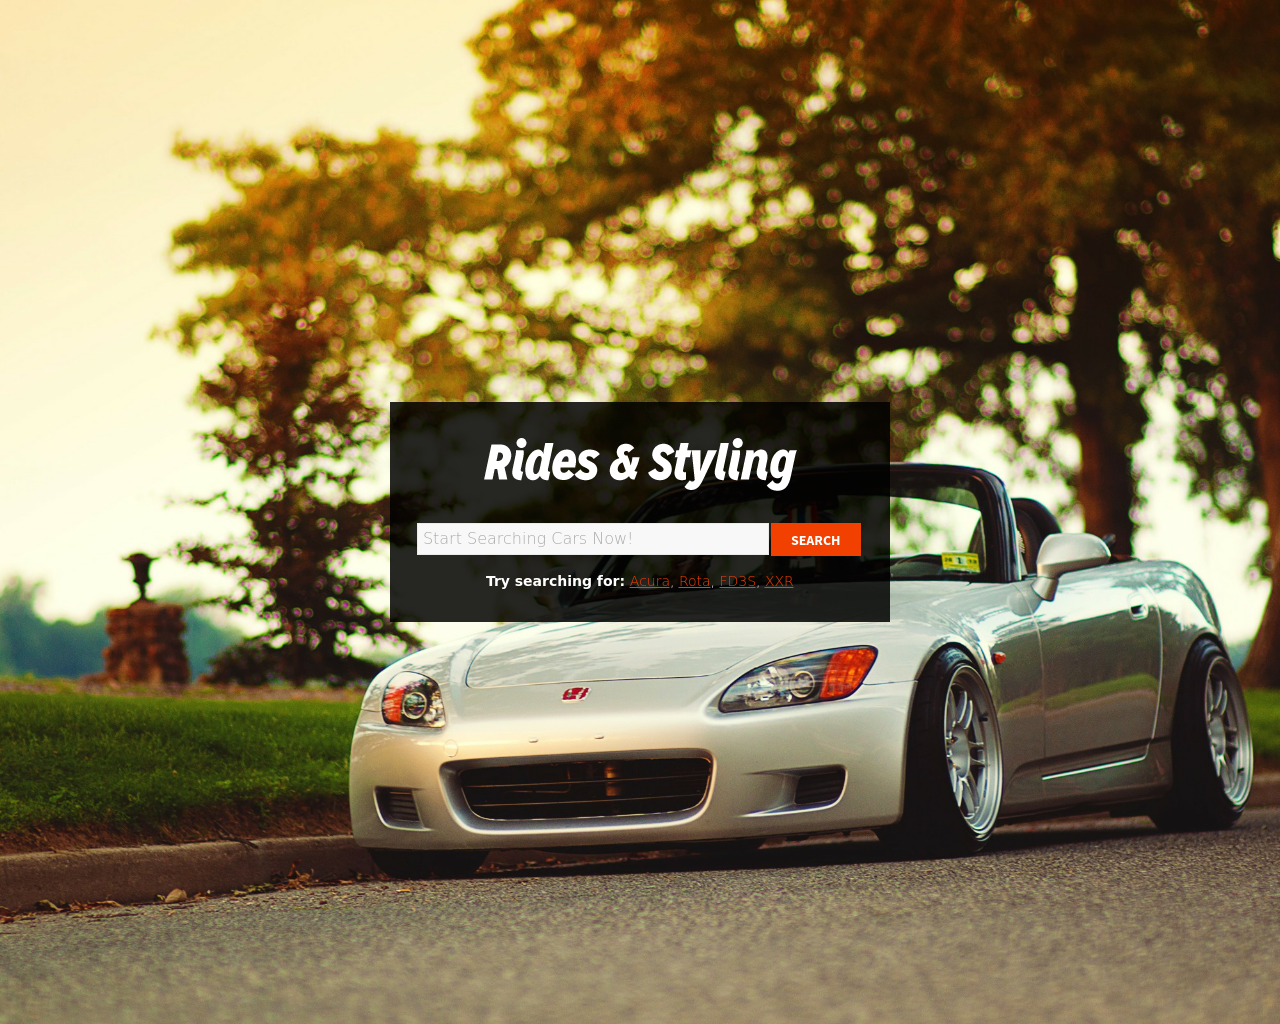 Rides-&-Styling-Advertising-Reviews-Pricing